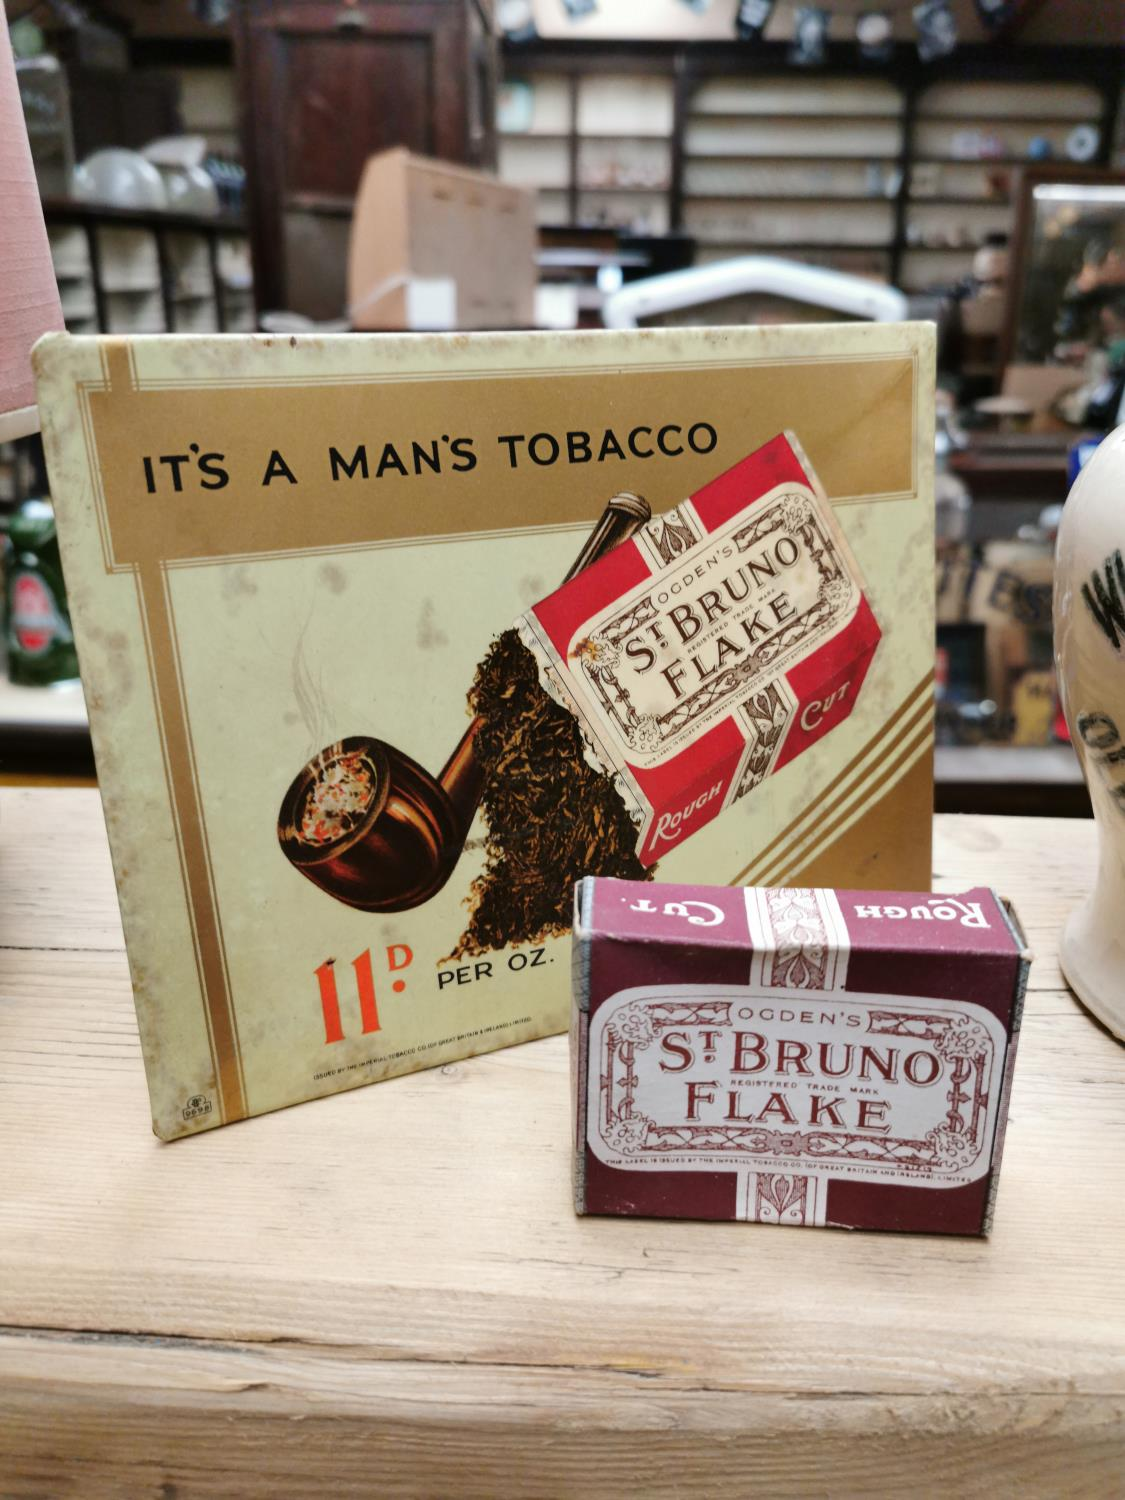 St. Bruno Flake advertising sign and display box.